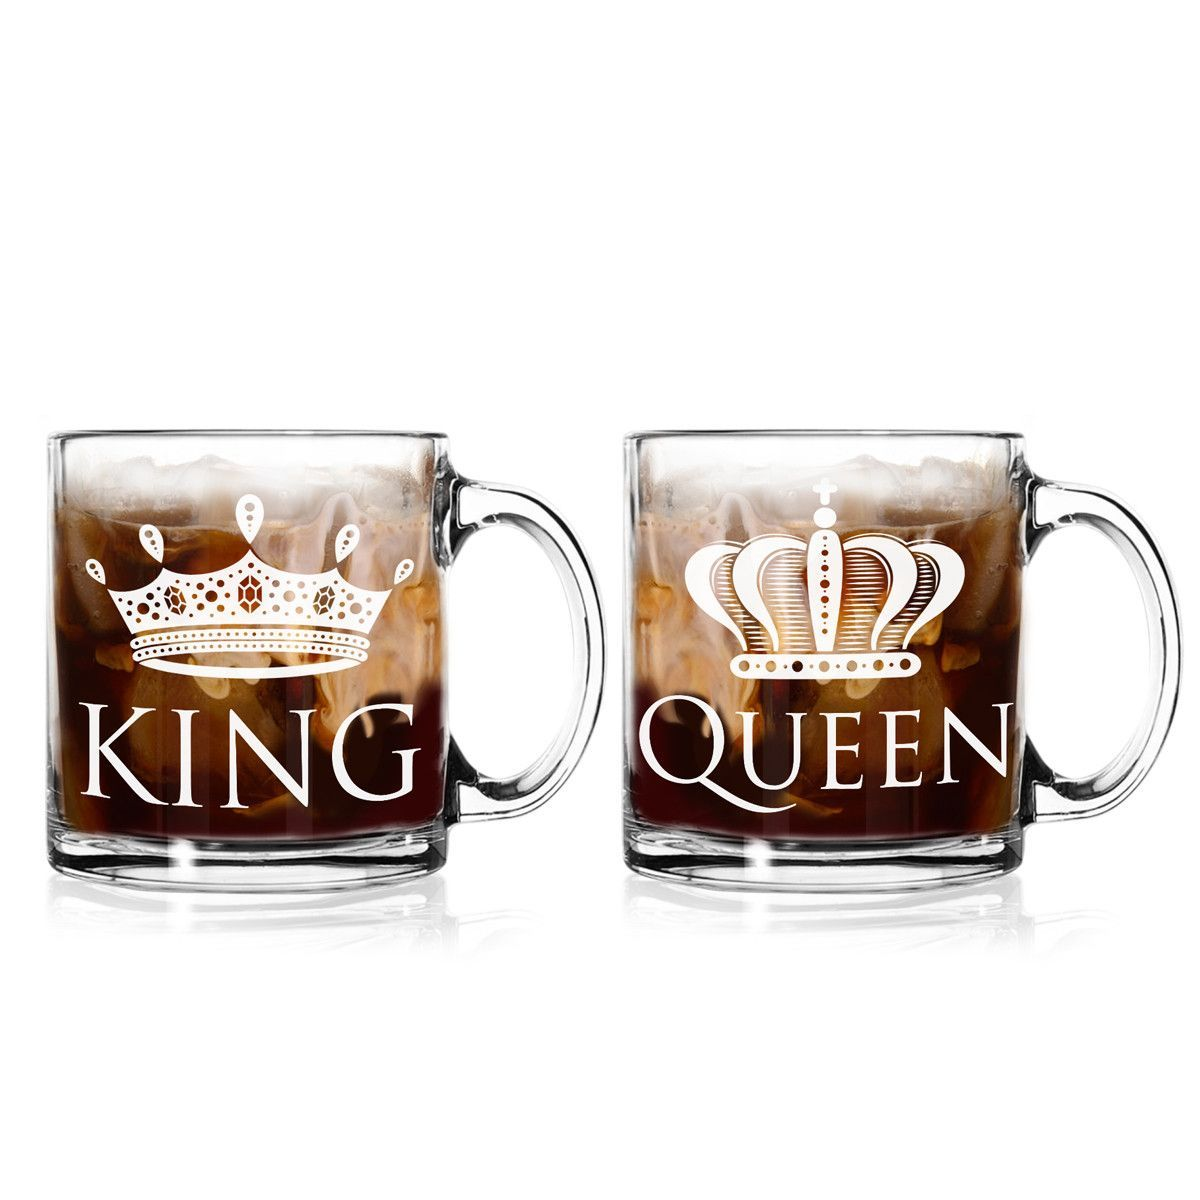 King And Queen Coffee Mugs 13 Oz Set Of 2 For The Mr Mrs